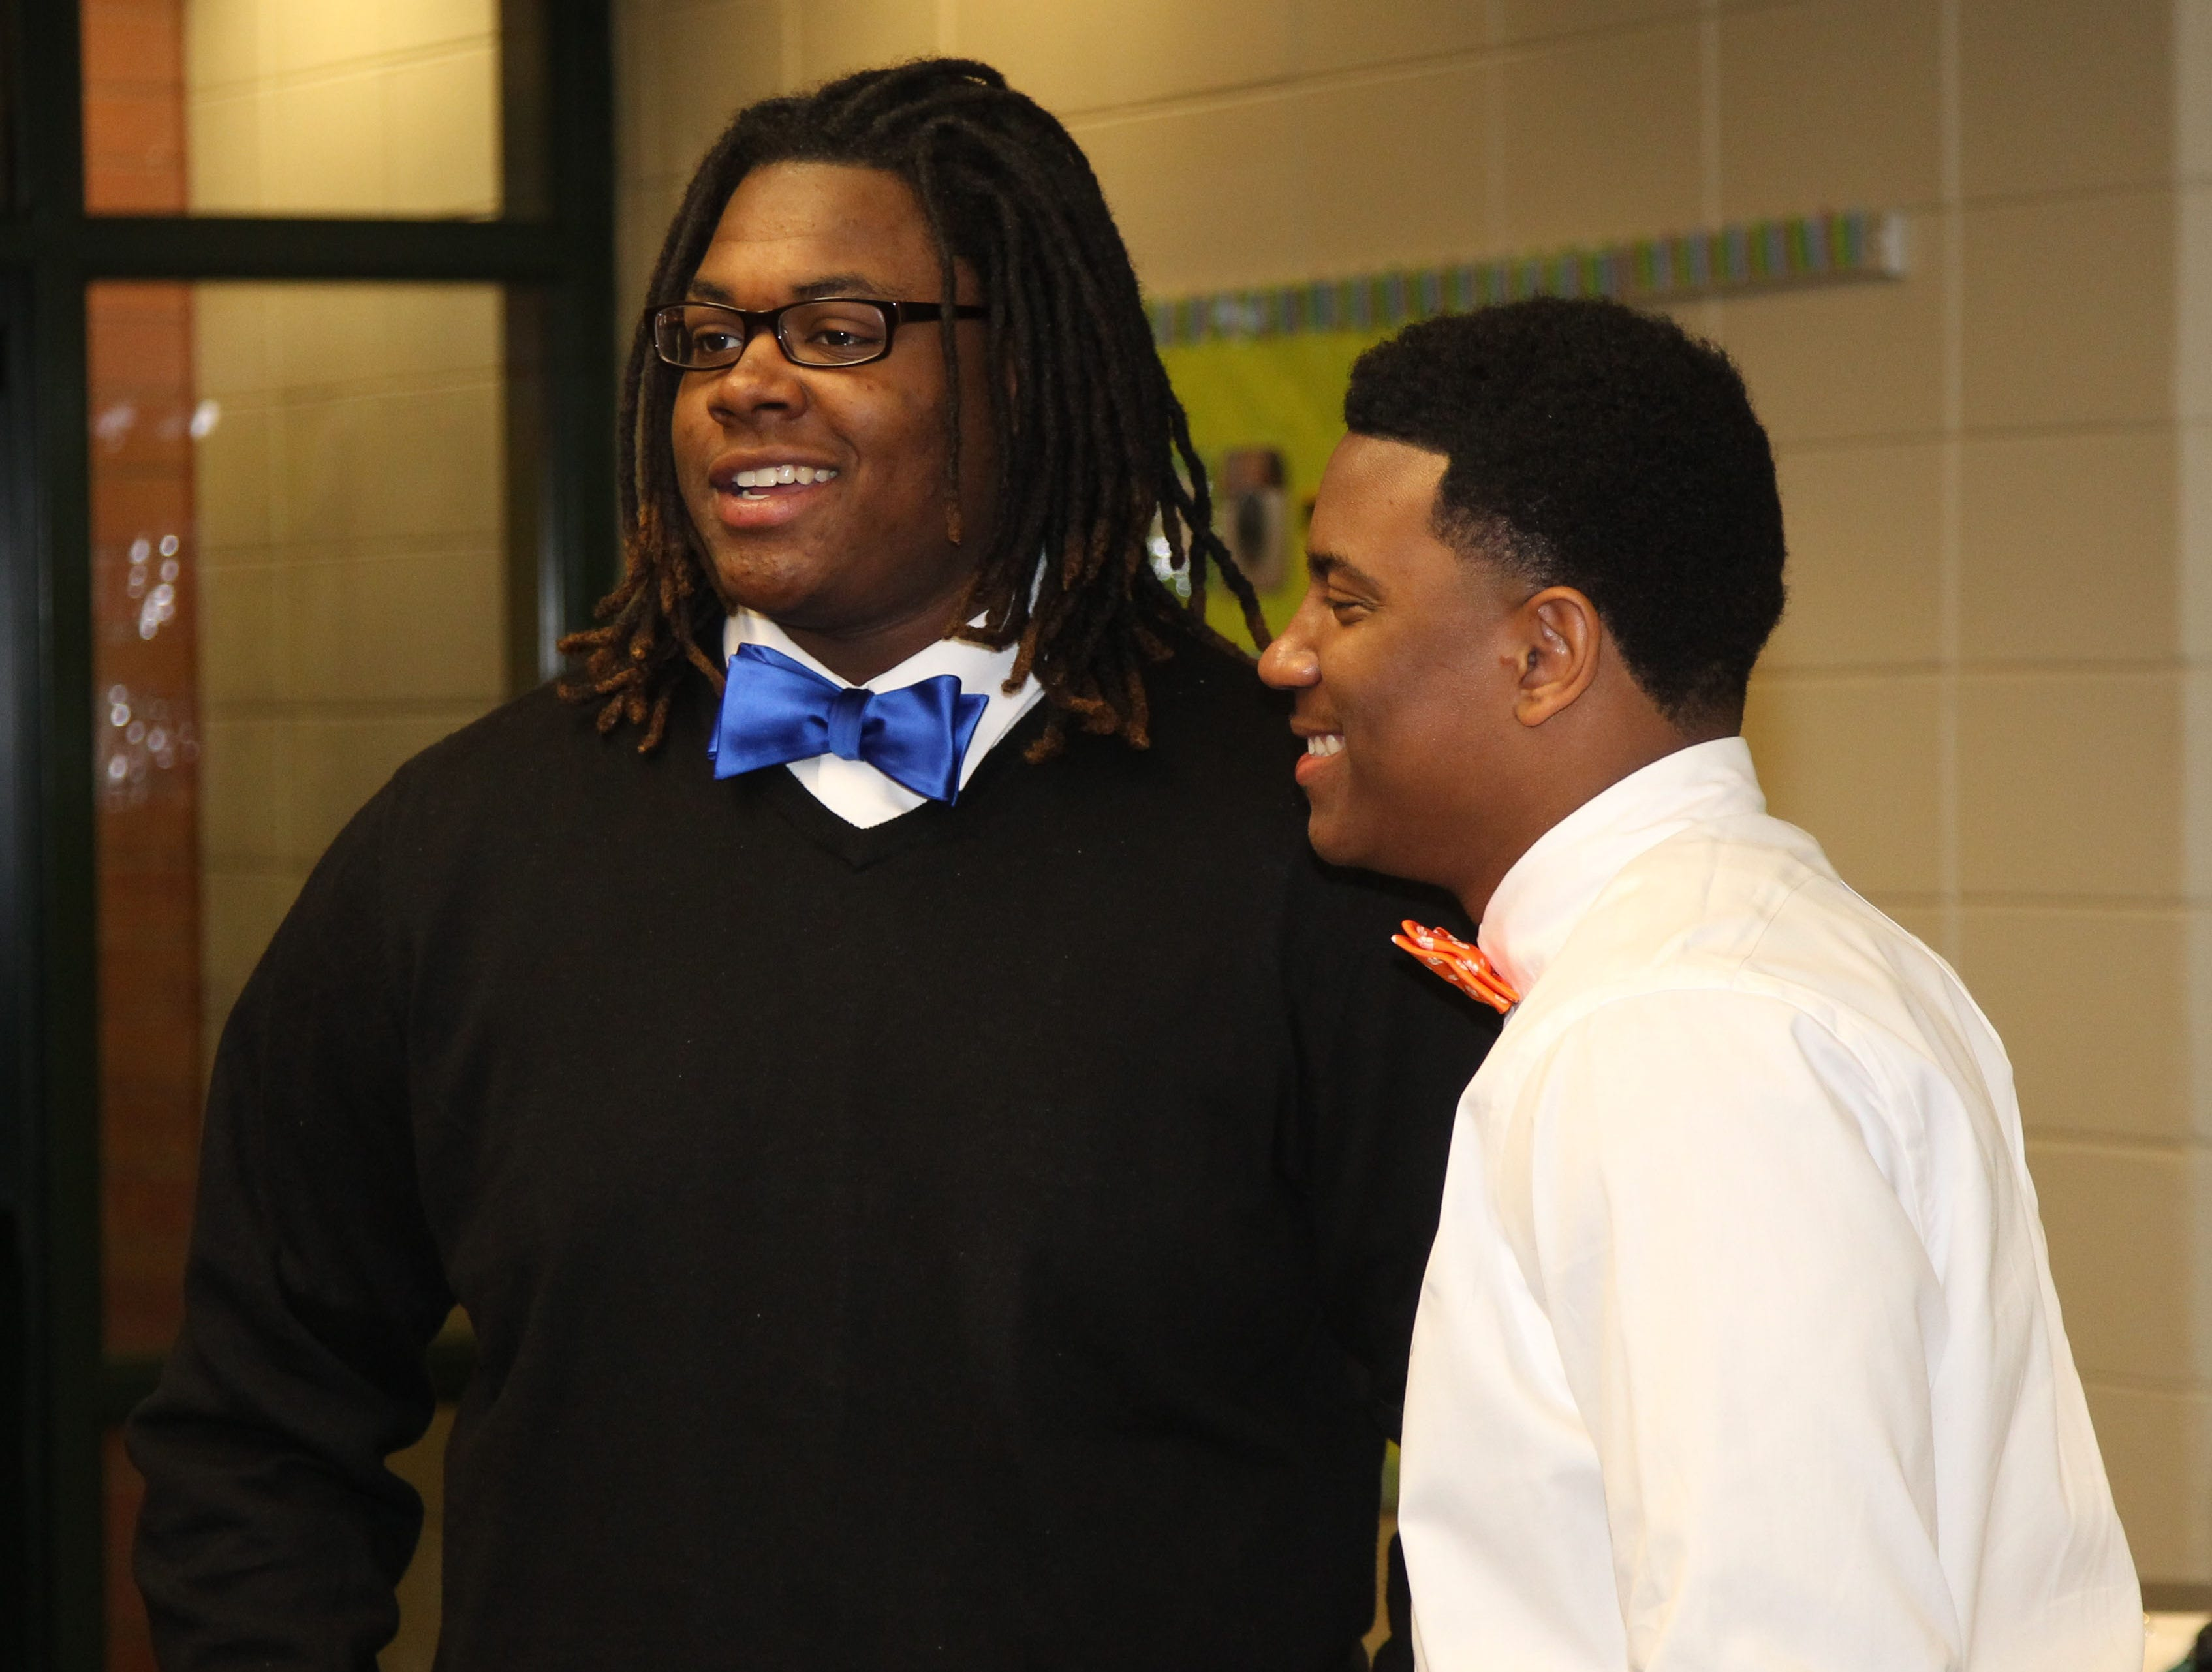 C.J. Fuller, right, participates in National Signing Day at Easley High School during his senior year.